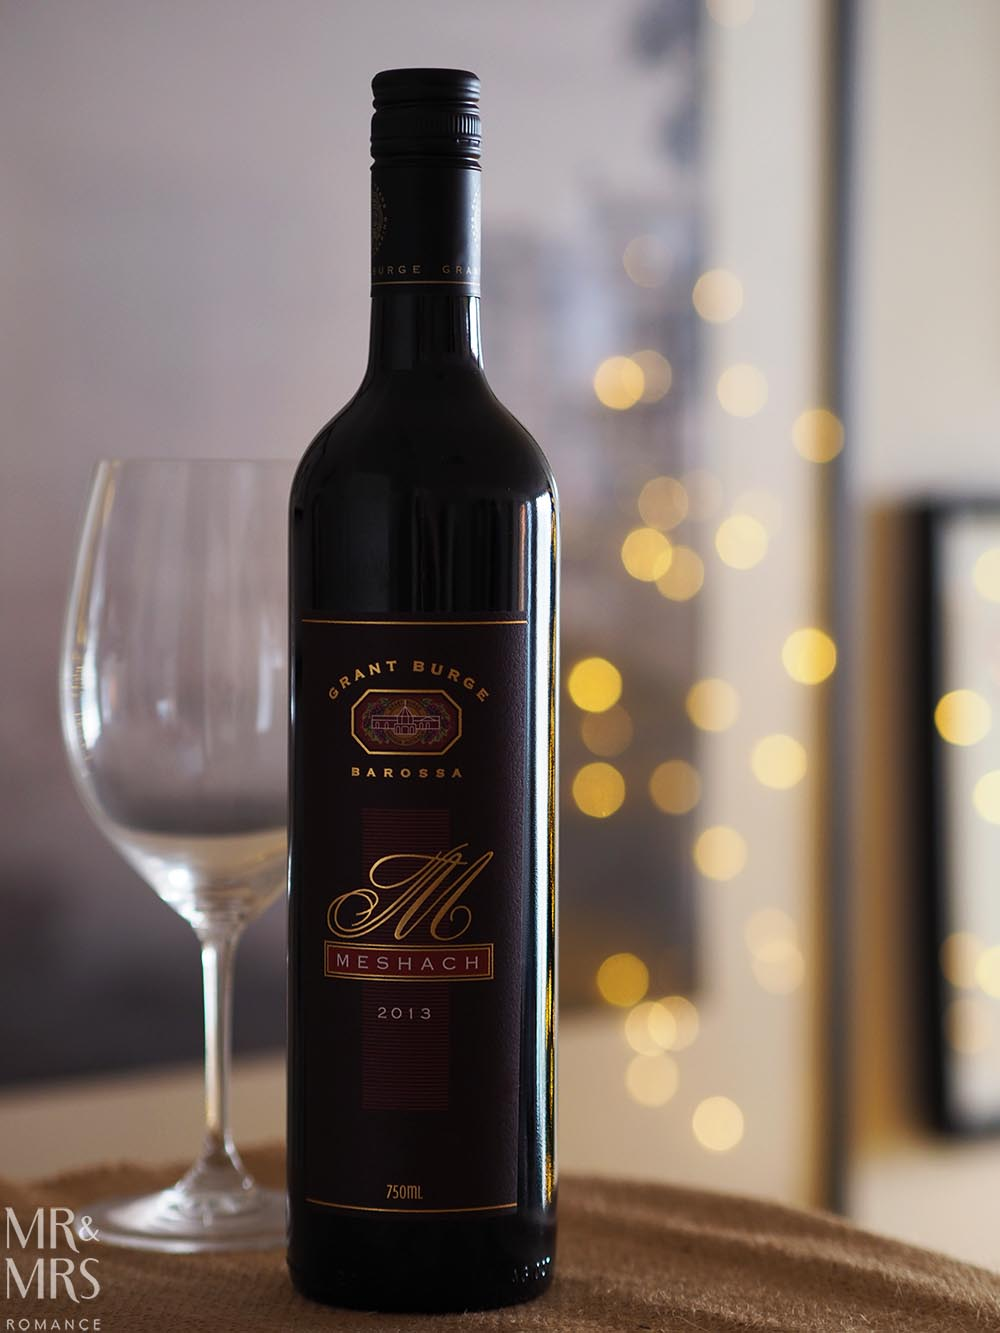 Christmas drinks list - Grant Burge Meshach Shiraz